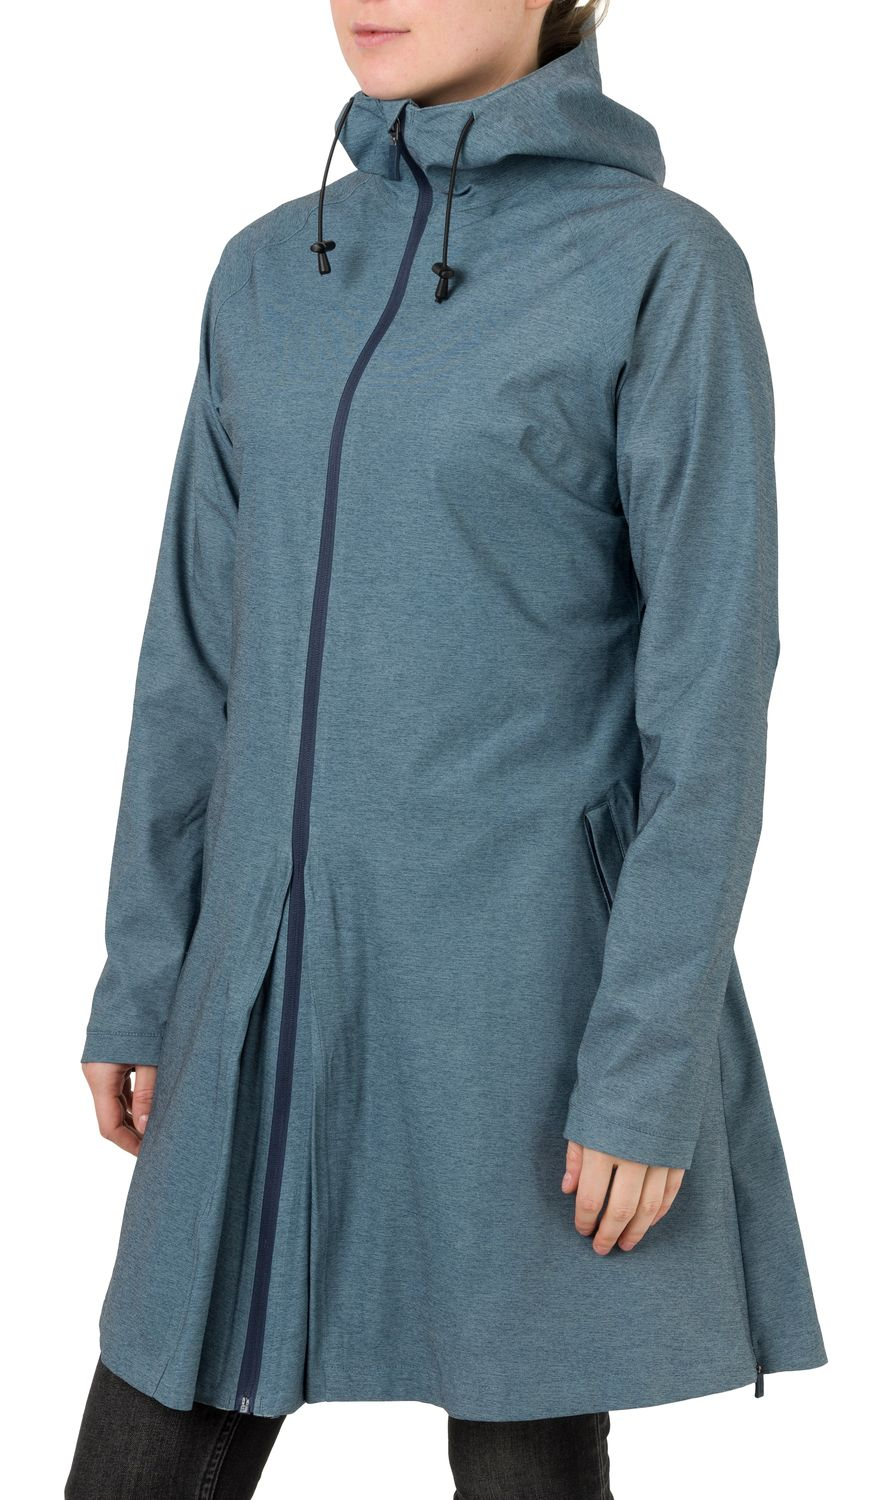 SeQ Rain Jacket Urban Outdoor Women fit example